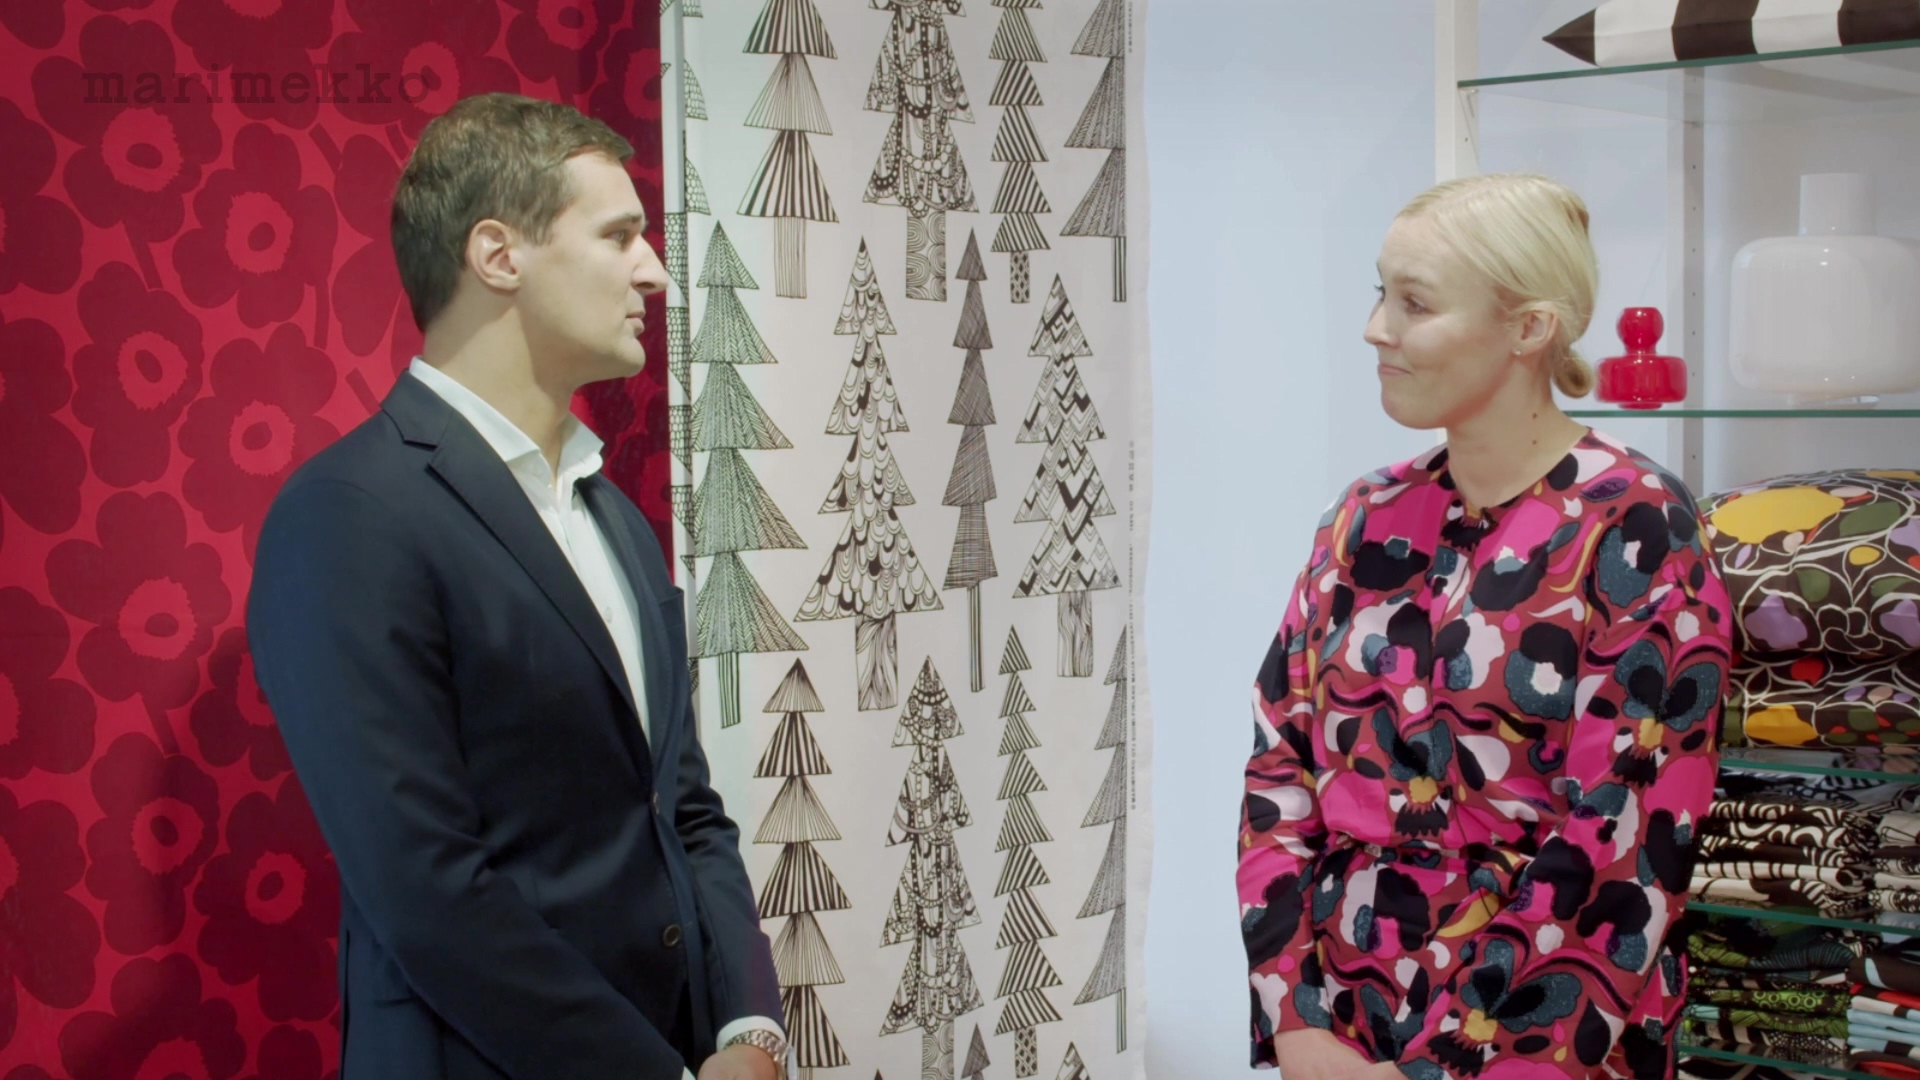 Marimekko Q319 interview with Tiina Alahuhta-Kasko